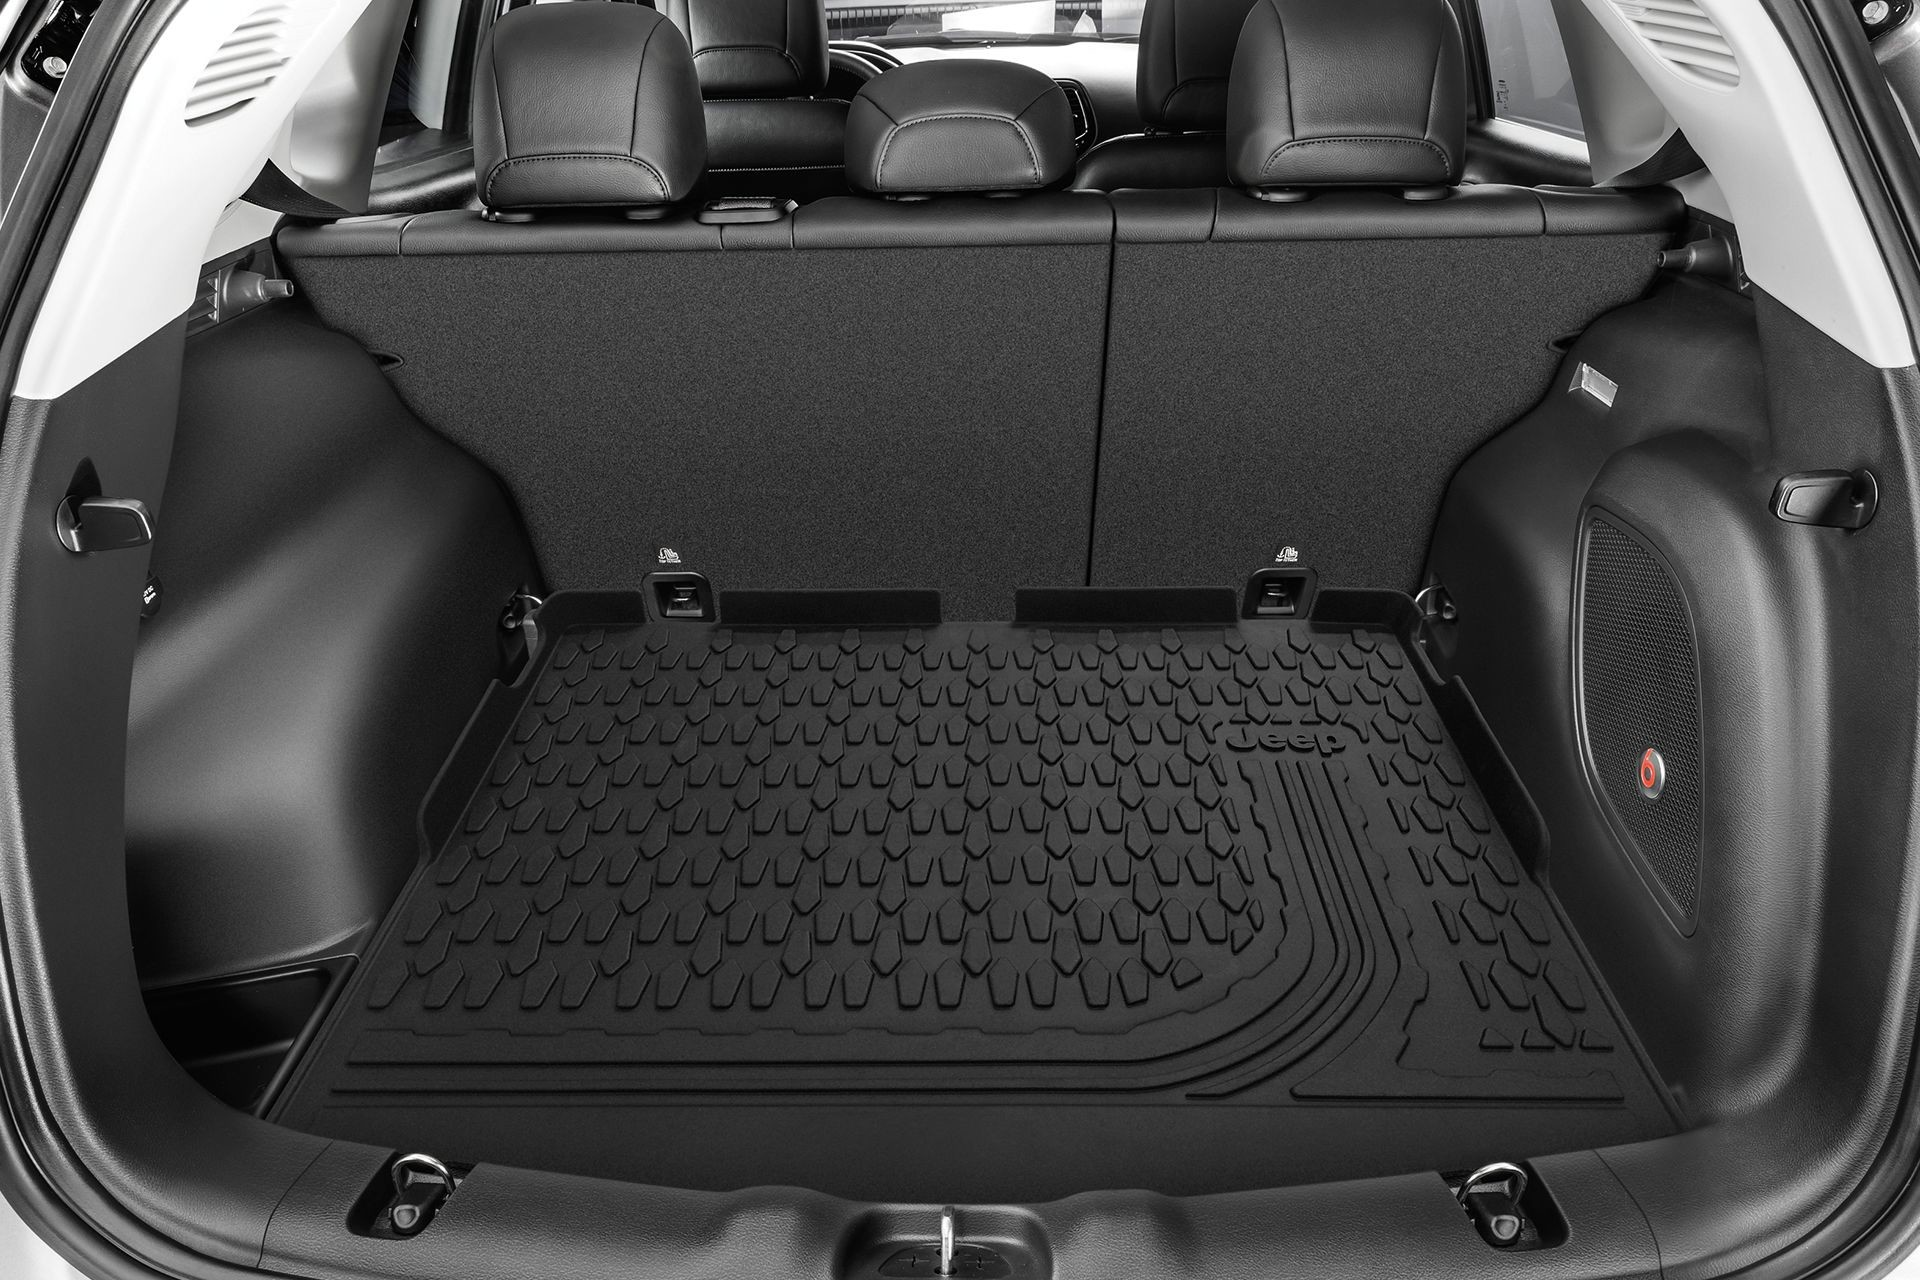 2019 Jeep Compass rear interior cargo